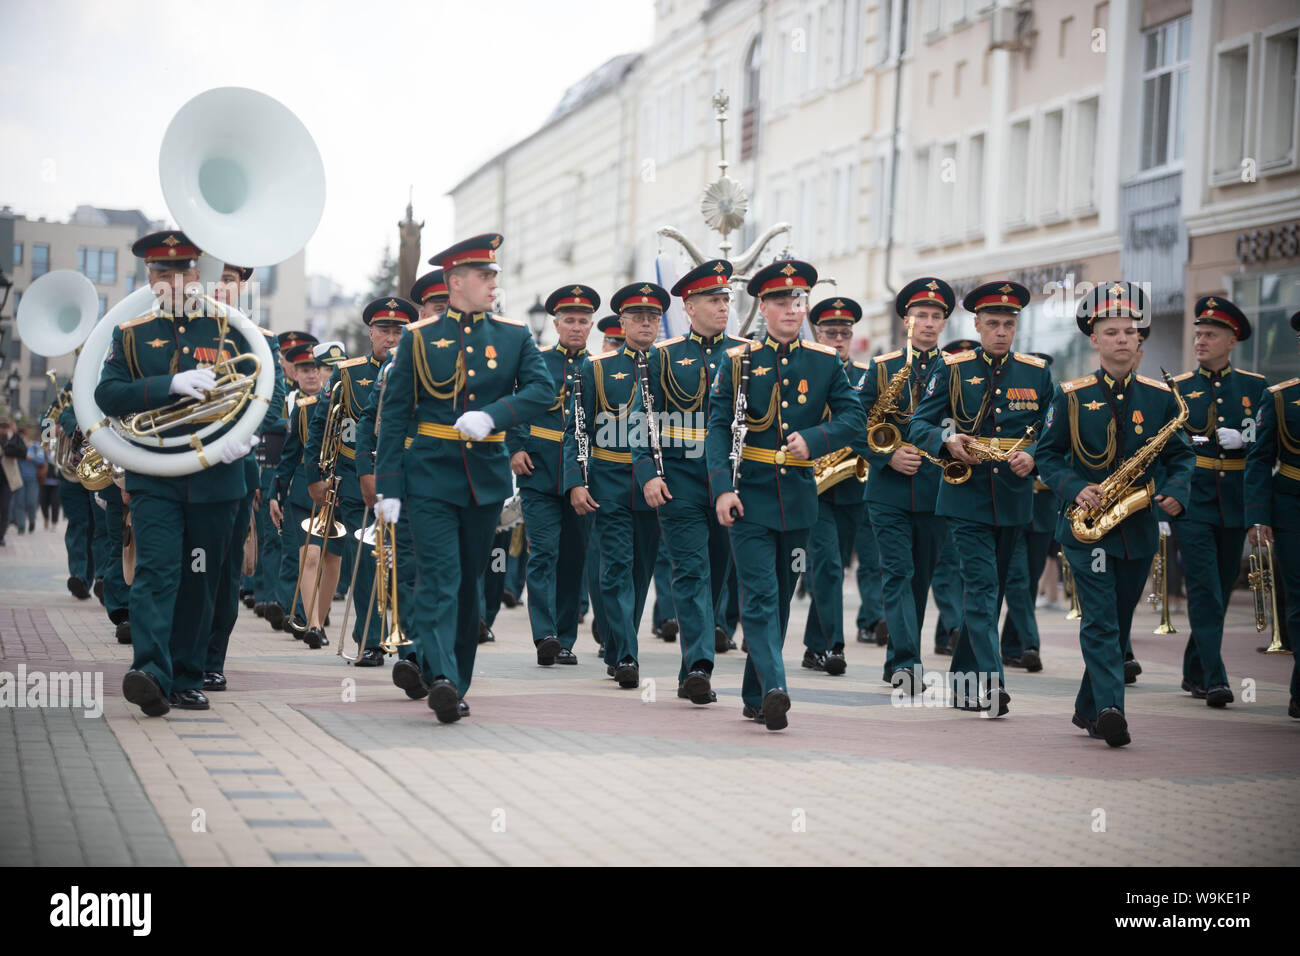 RUSSIA, KAZAN 09-08-2019: A wind instrument parade - people